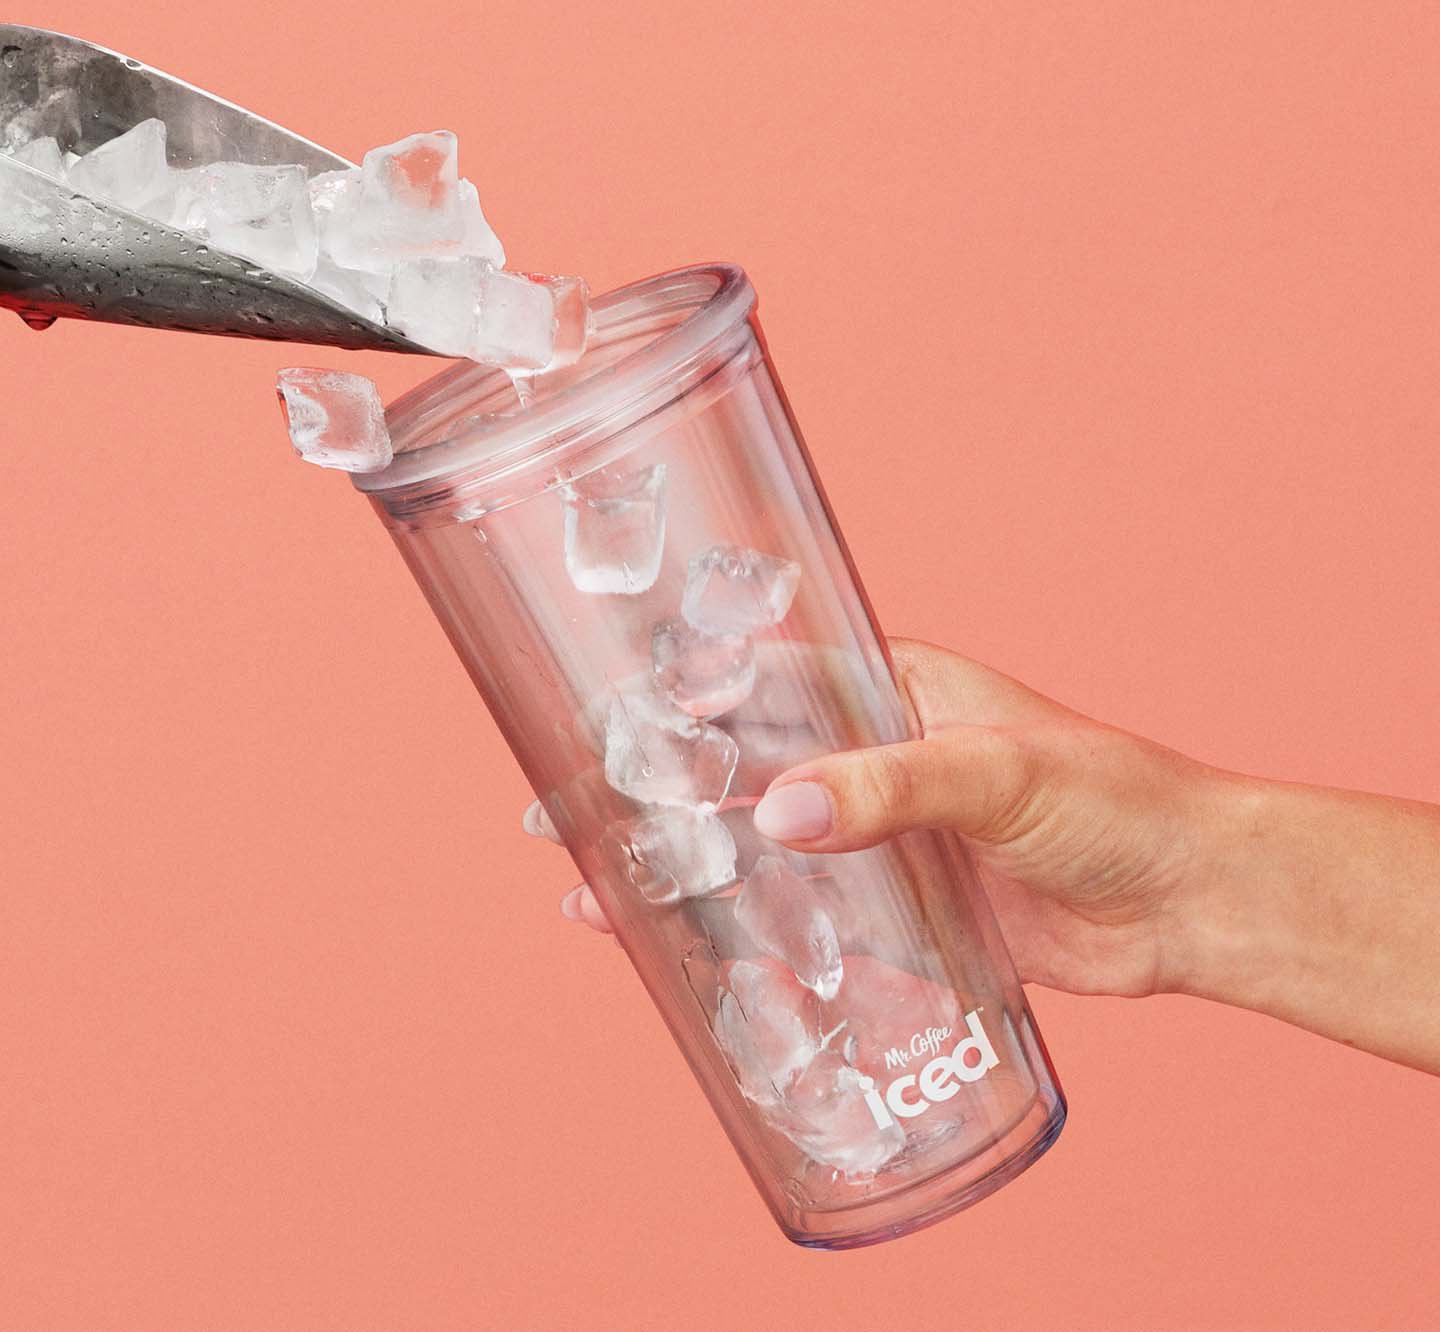 Putting ice into a cup